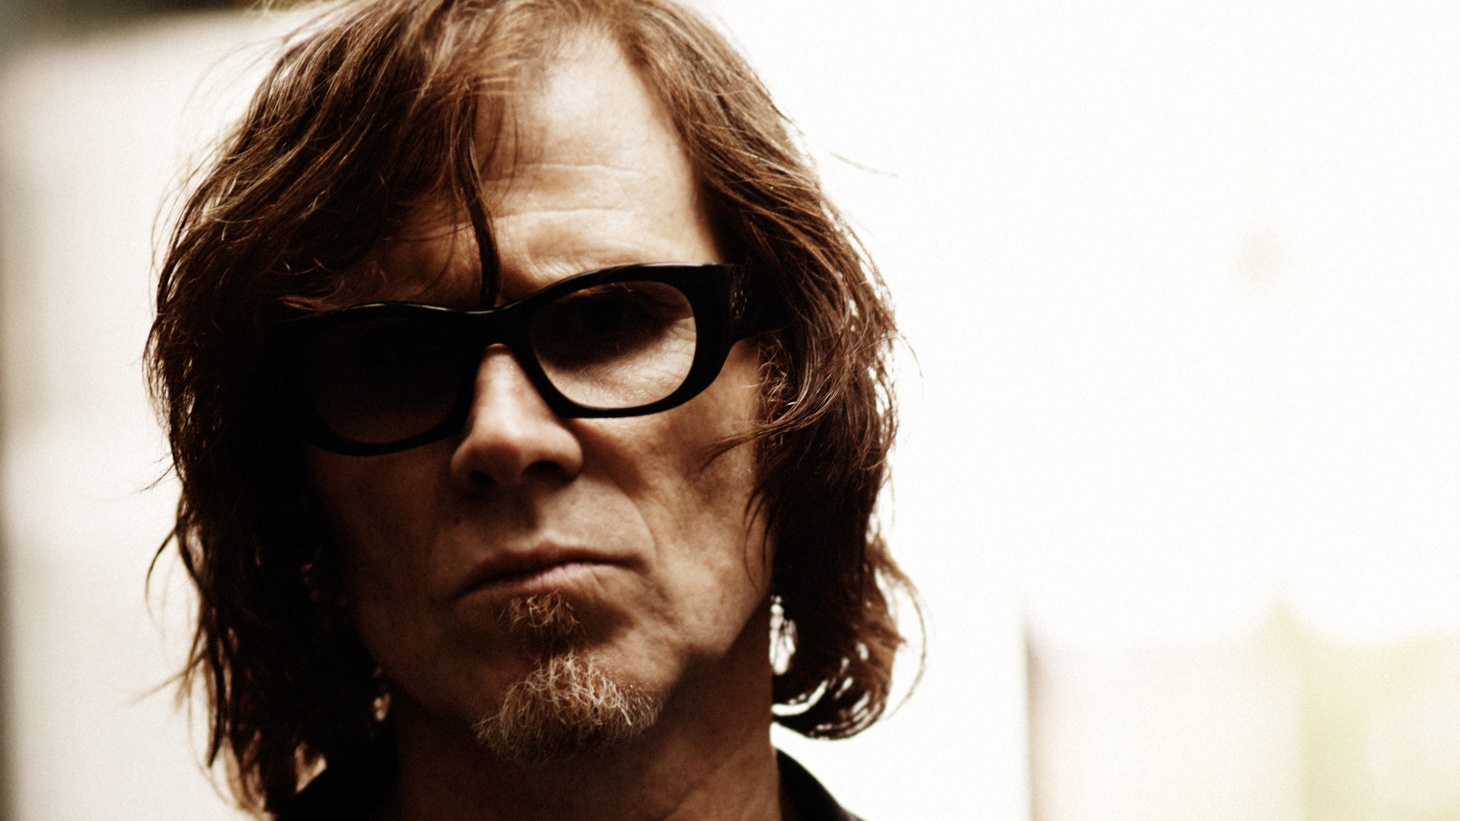 """How better to celebrate Halloween than a track from Soulsaver Mark Lanegan, who makes spooky and beautiful music. Here's """"Harvest Home""""."""